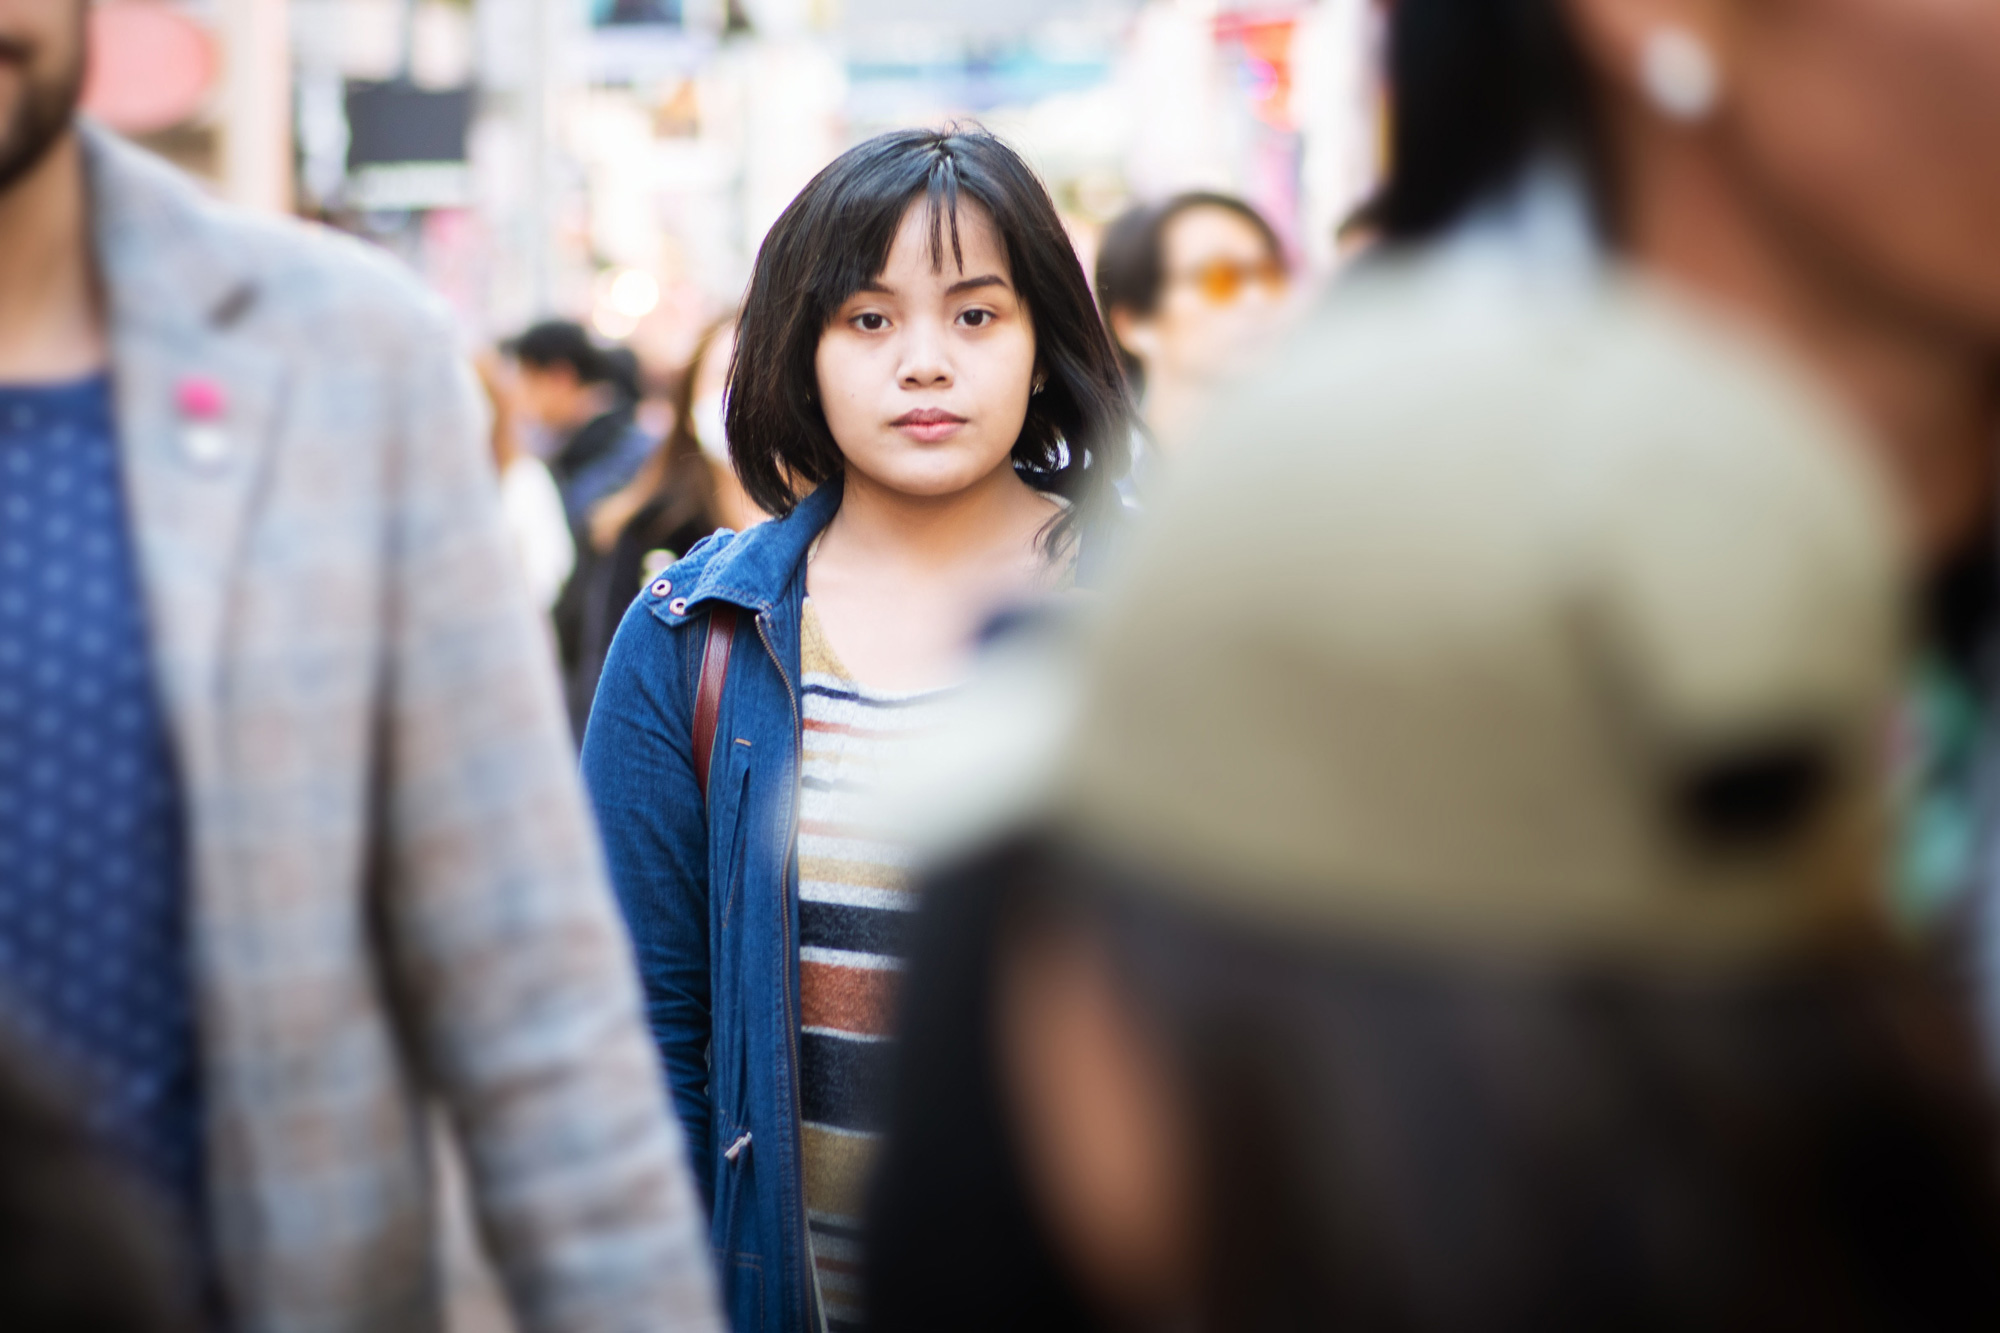 photo - Young Woman Standing in the Middle of a Crowded Street